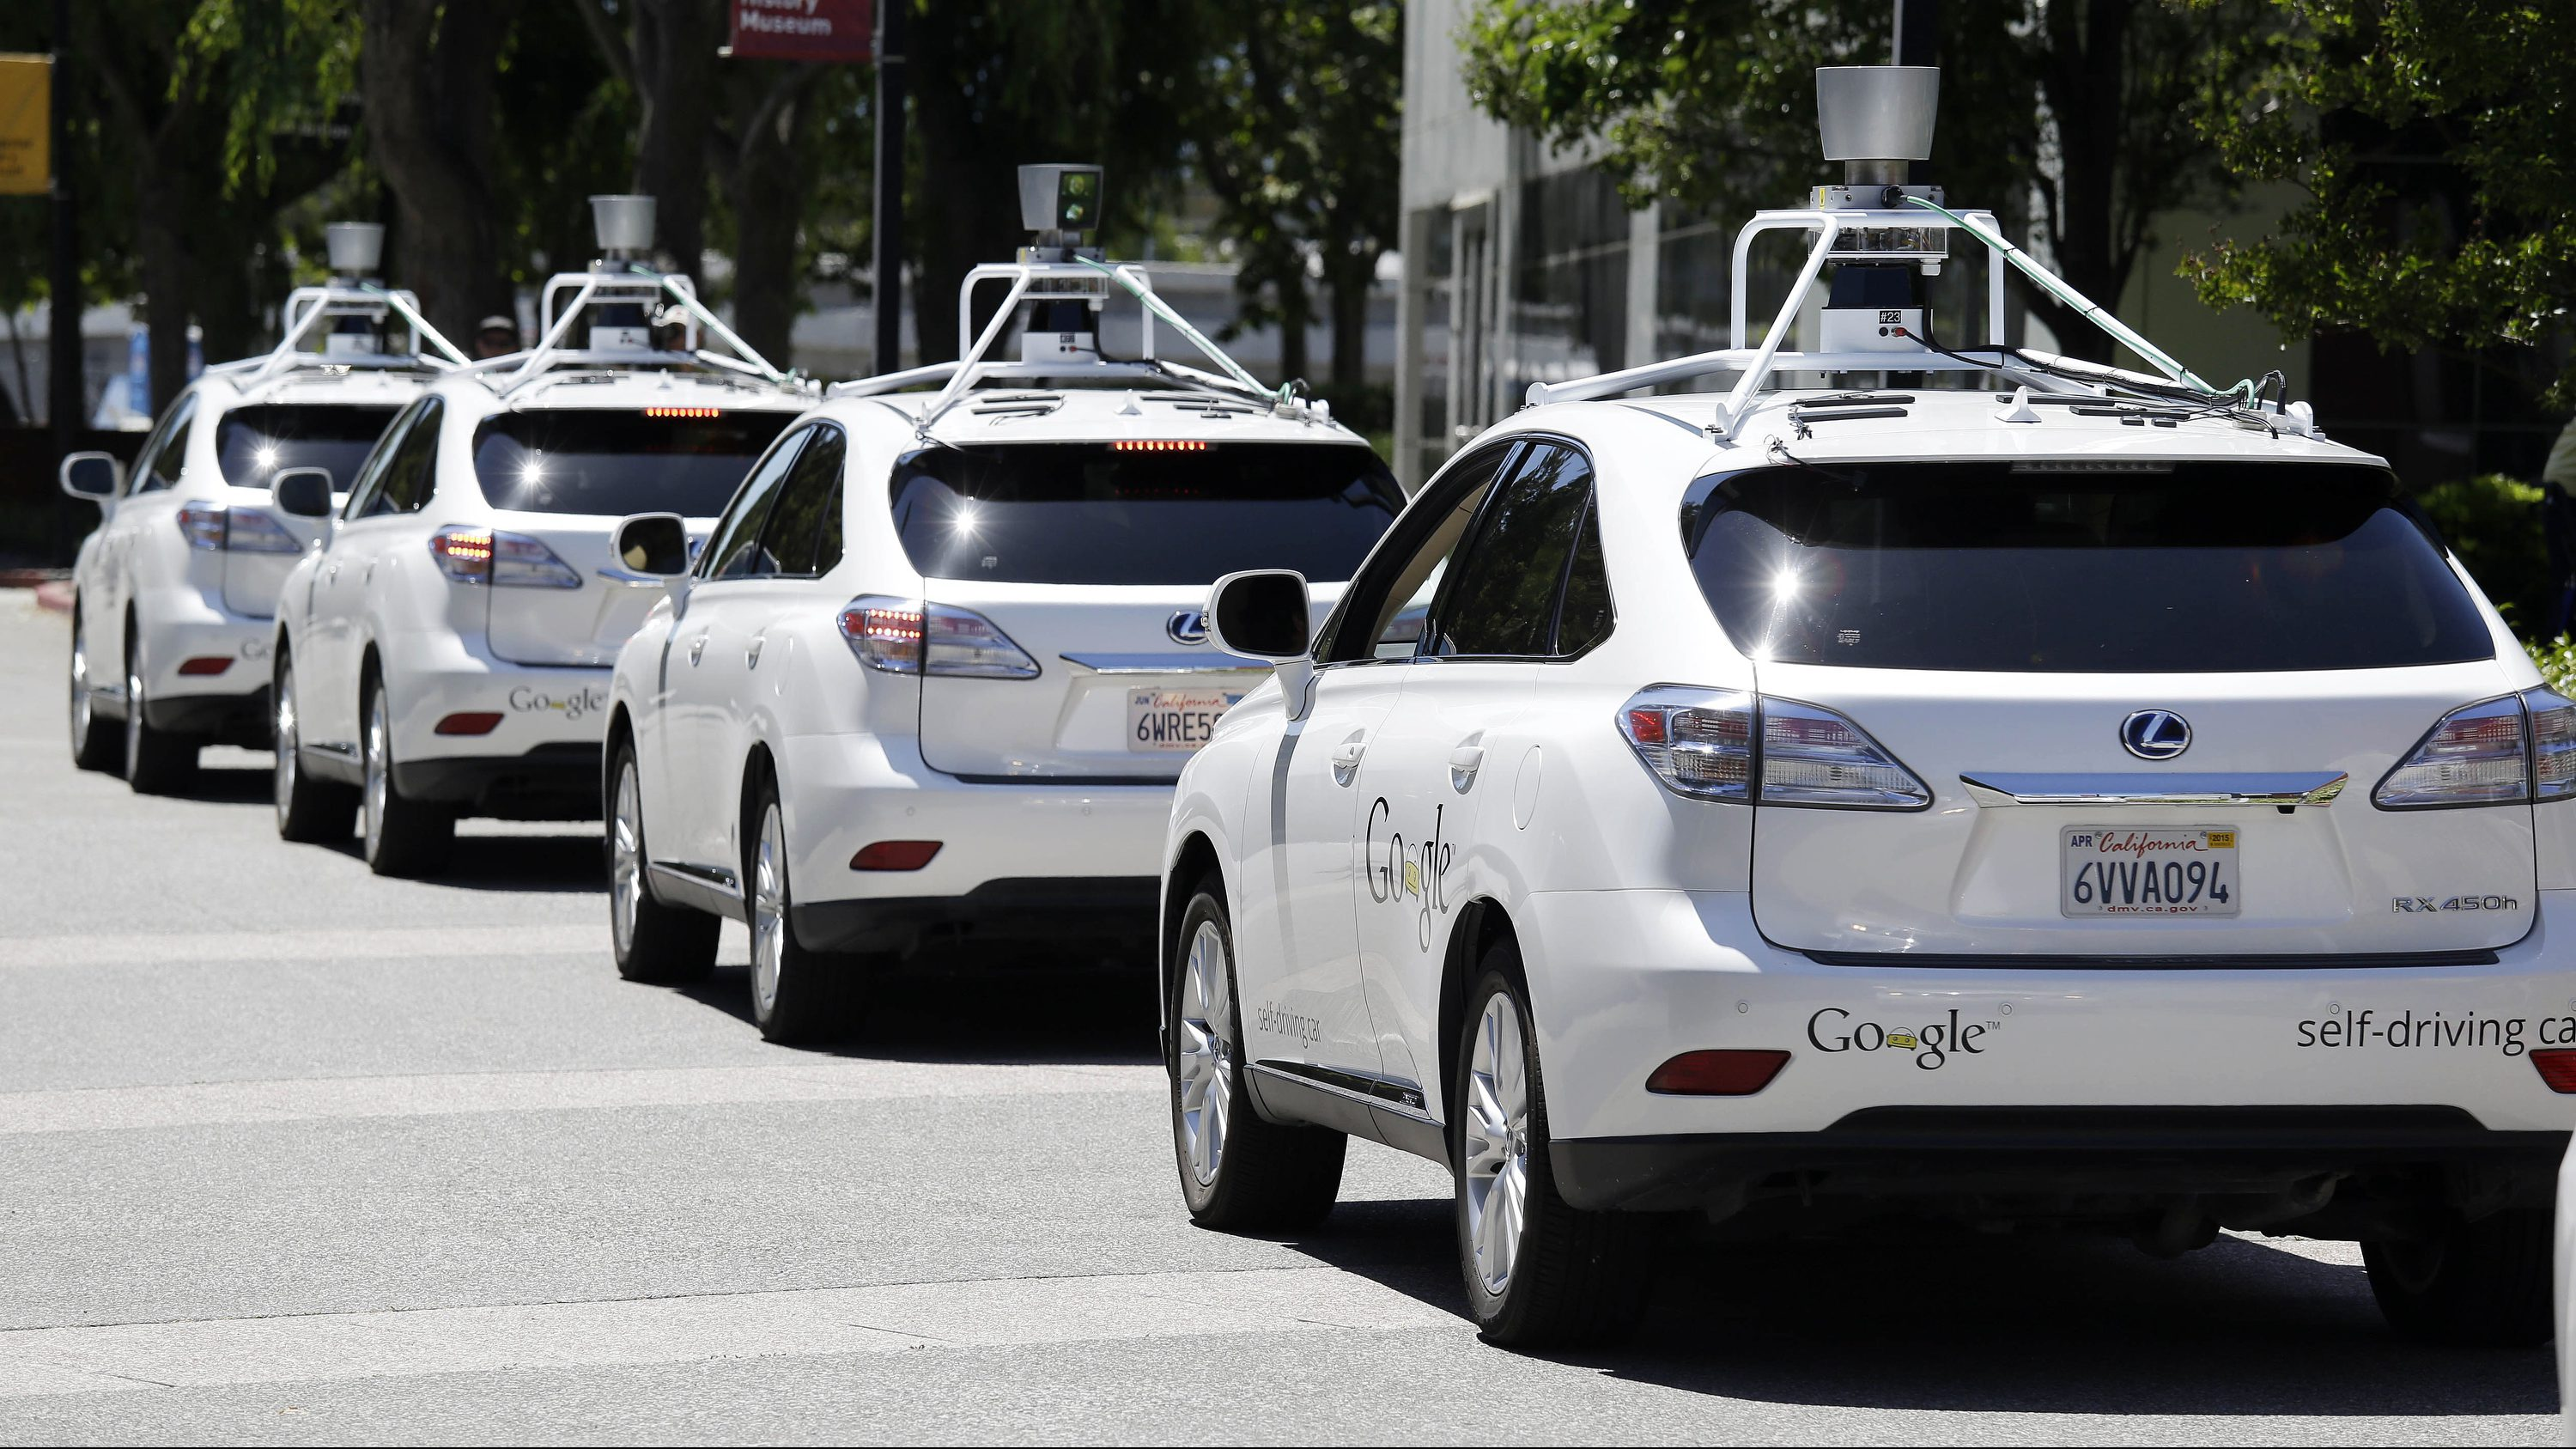 "FILE - This May 13, 2014, file photo shows a row of Google self-driving Lexus cars at a Google event outside the Computer History Museum in Mountain View, Calif. California regulators release safety reports filed by 11 companies that have been testing self-driving car prototypes on public roads on Wednesday, Feb. 1, 2017. The papers report the number of times in 2016 that human backup drivers took control from the cars' self-driving software, though companies argue such ""disengagements"" don't always reflect something going wrong. (AP Photo/Eric Risberg, File)"